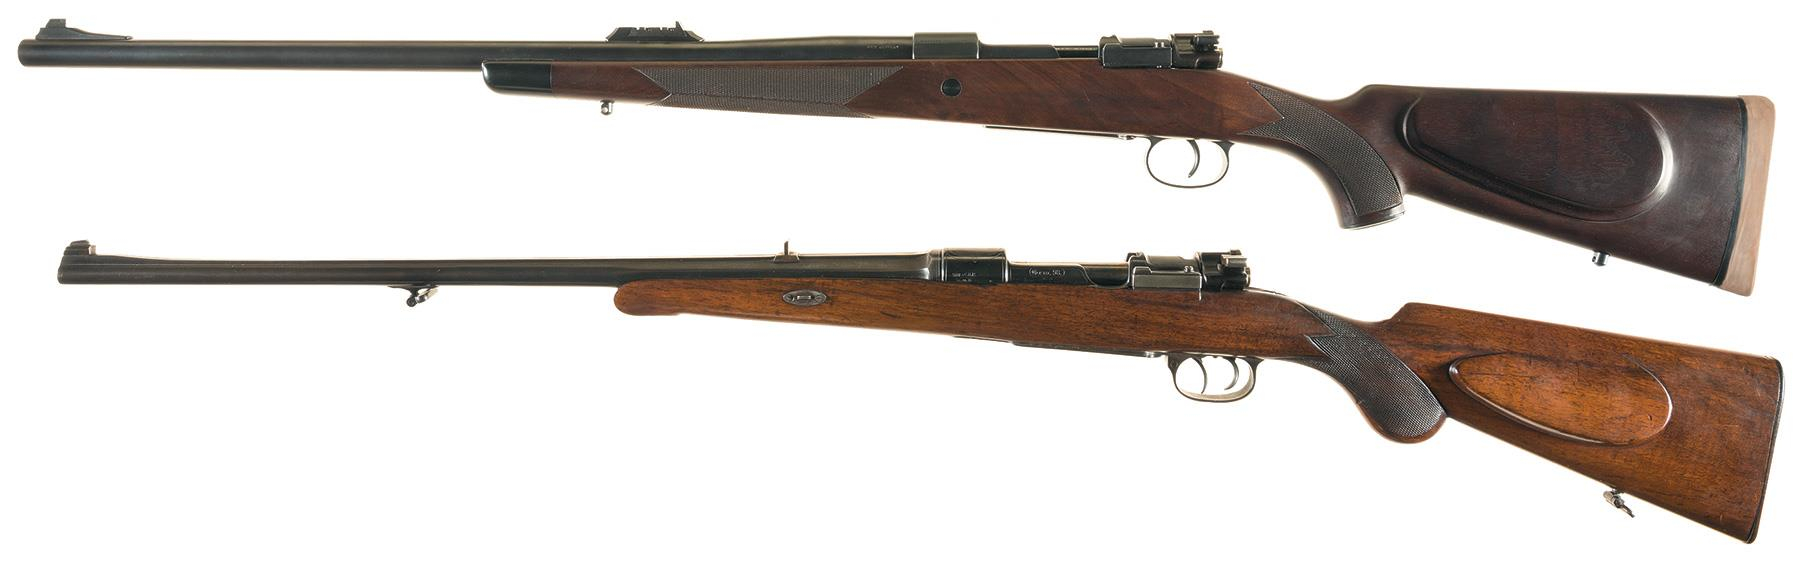 Left side view of the two rifles in the RIA lot 2769. Top is the Westley Richards .500 Jeffrey and below is the H. Burgsmuller & Sohne 8mm Mauser.